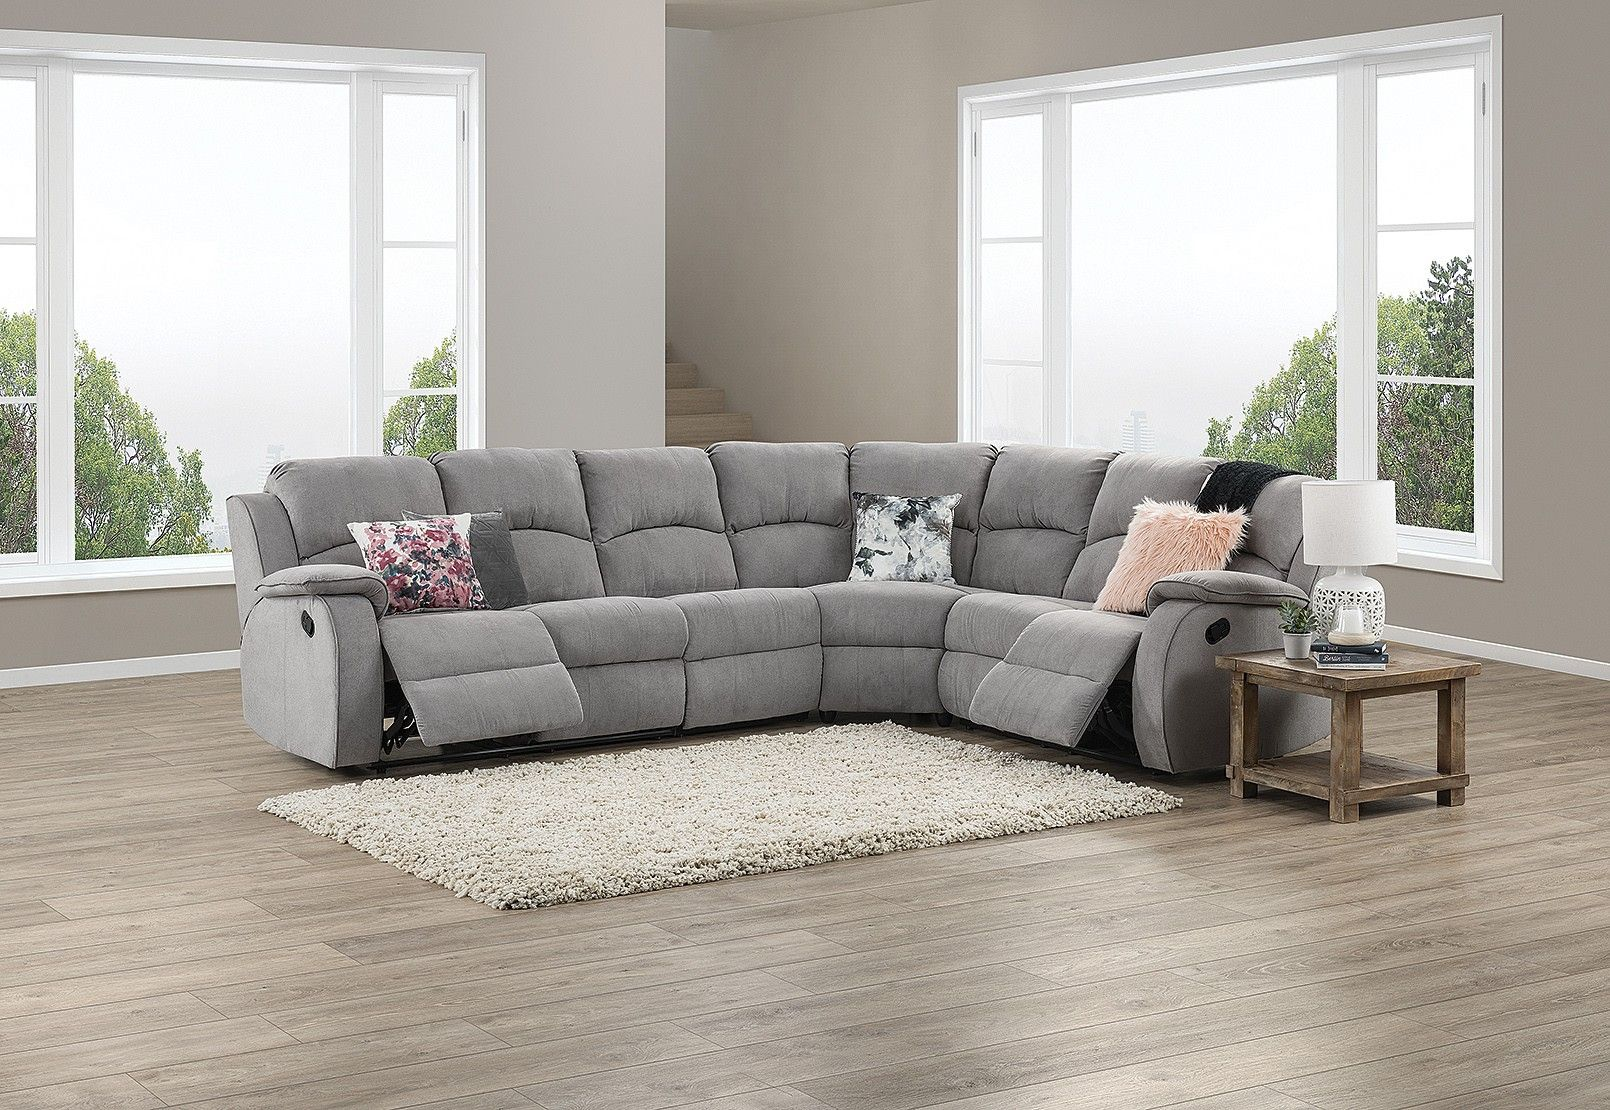 Saloon Fabric Corner Lounge With Inbuilt Recliners Amart Furniture Furniture Lounge Grey Lounge